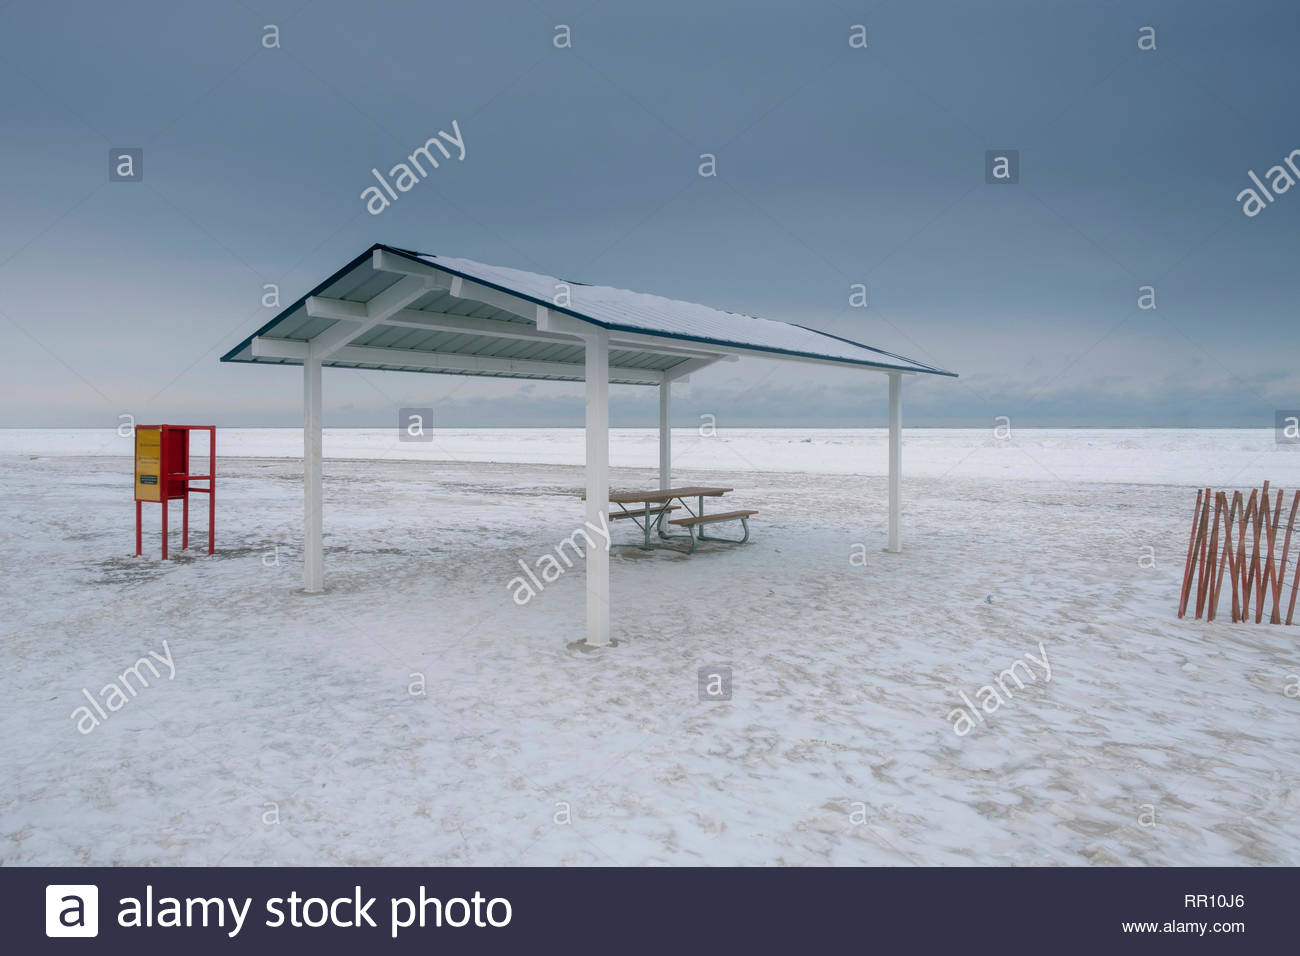 White and blue painted wood beach shelter on frozen beach, red metal signage, red fencing, frozen lake, soft blue sky, Port Dalhousie, Canada - Stock Image